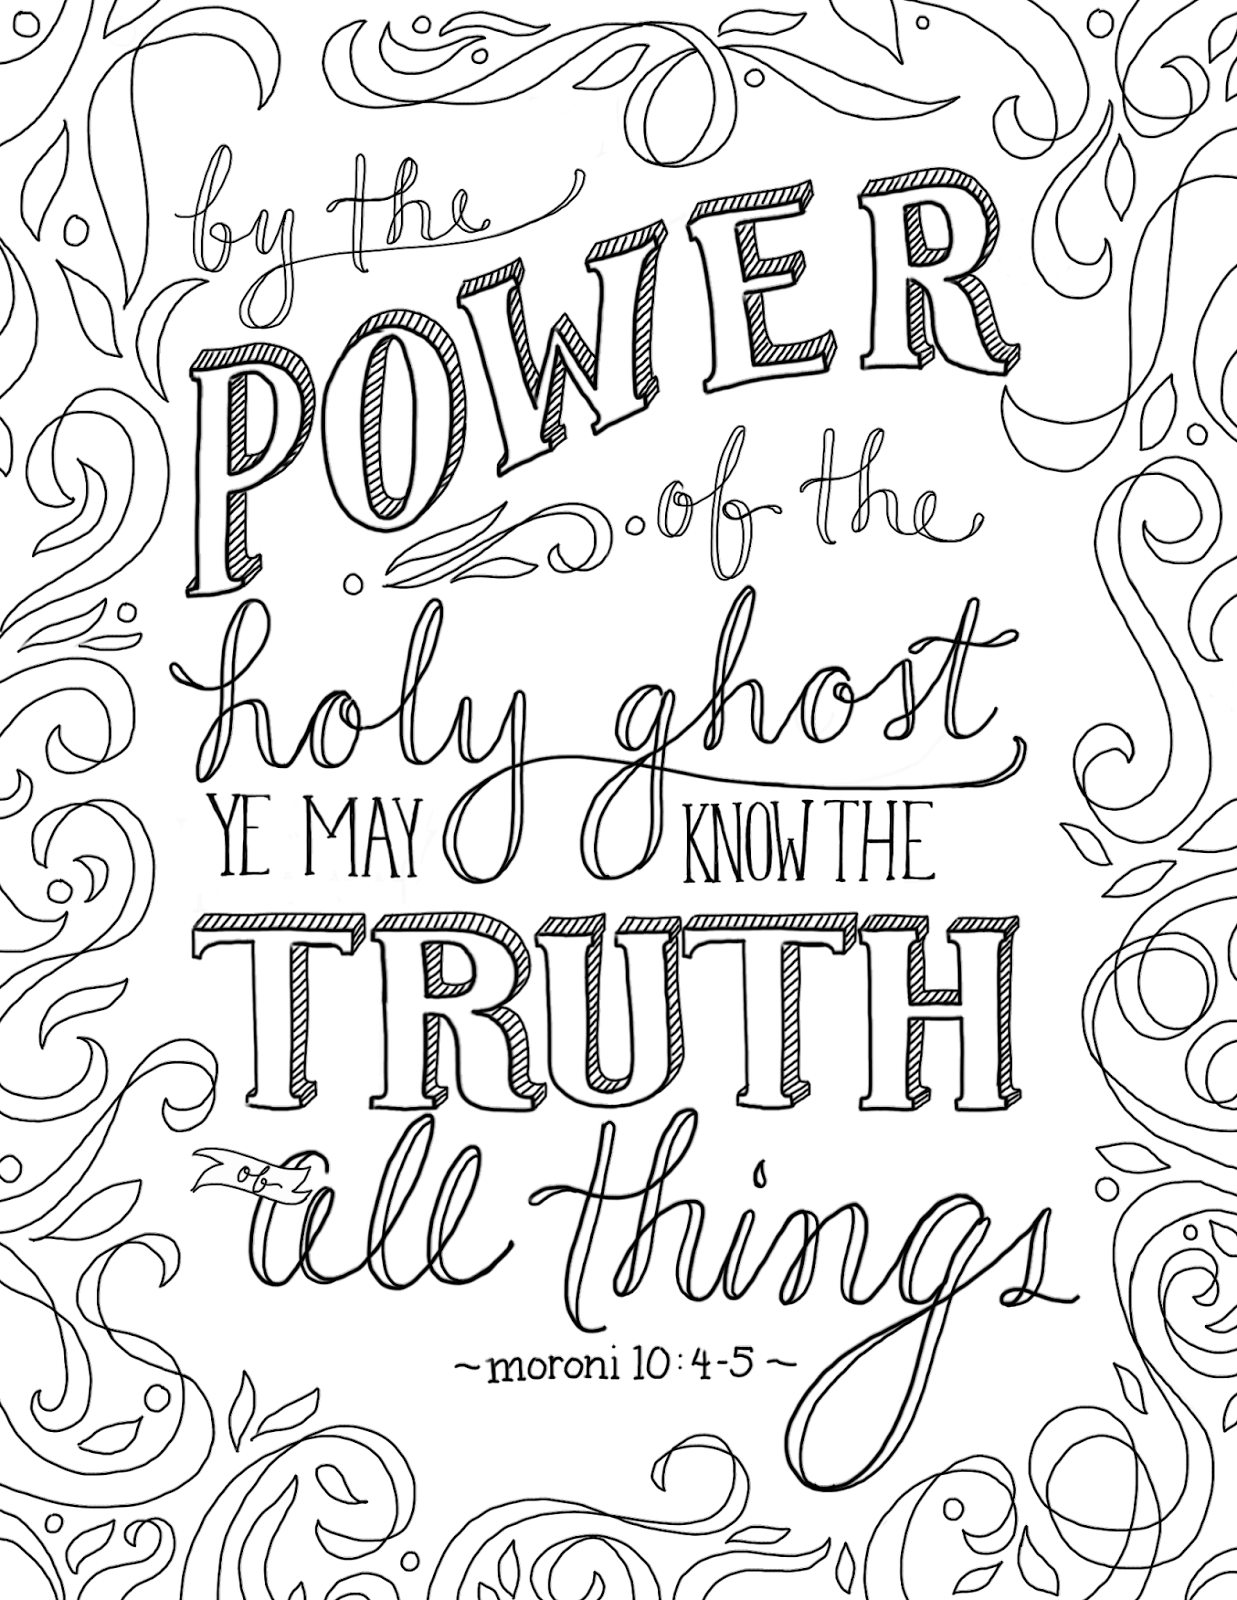 Just What I Squeeze In The Truth Of All Things Coloring Page 2 Lds Coloring Pages Quote Coloring Pages Bible Coloring Pages